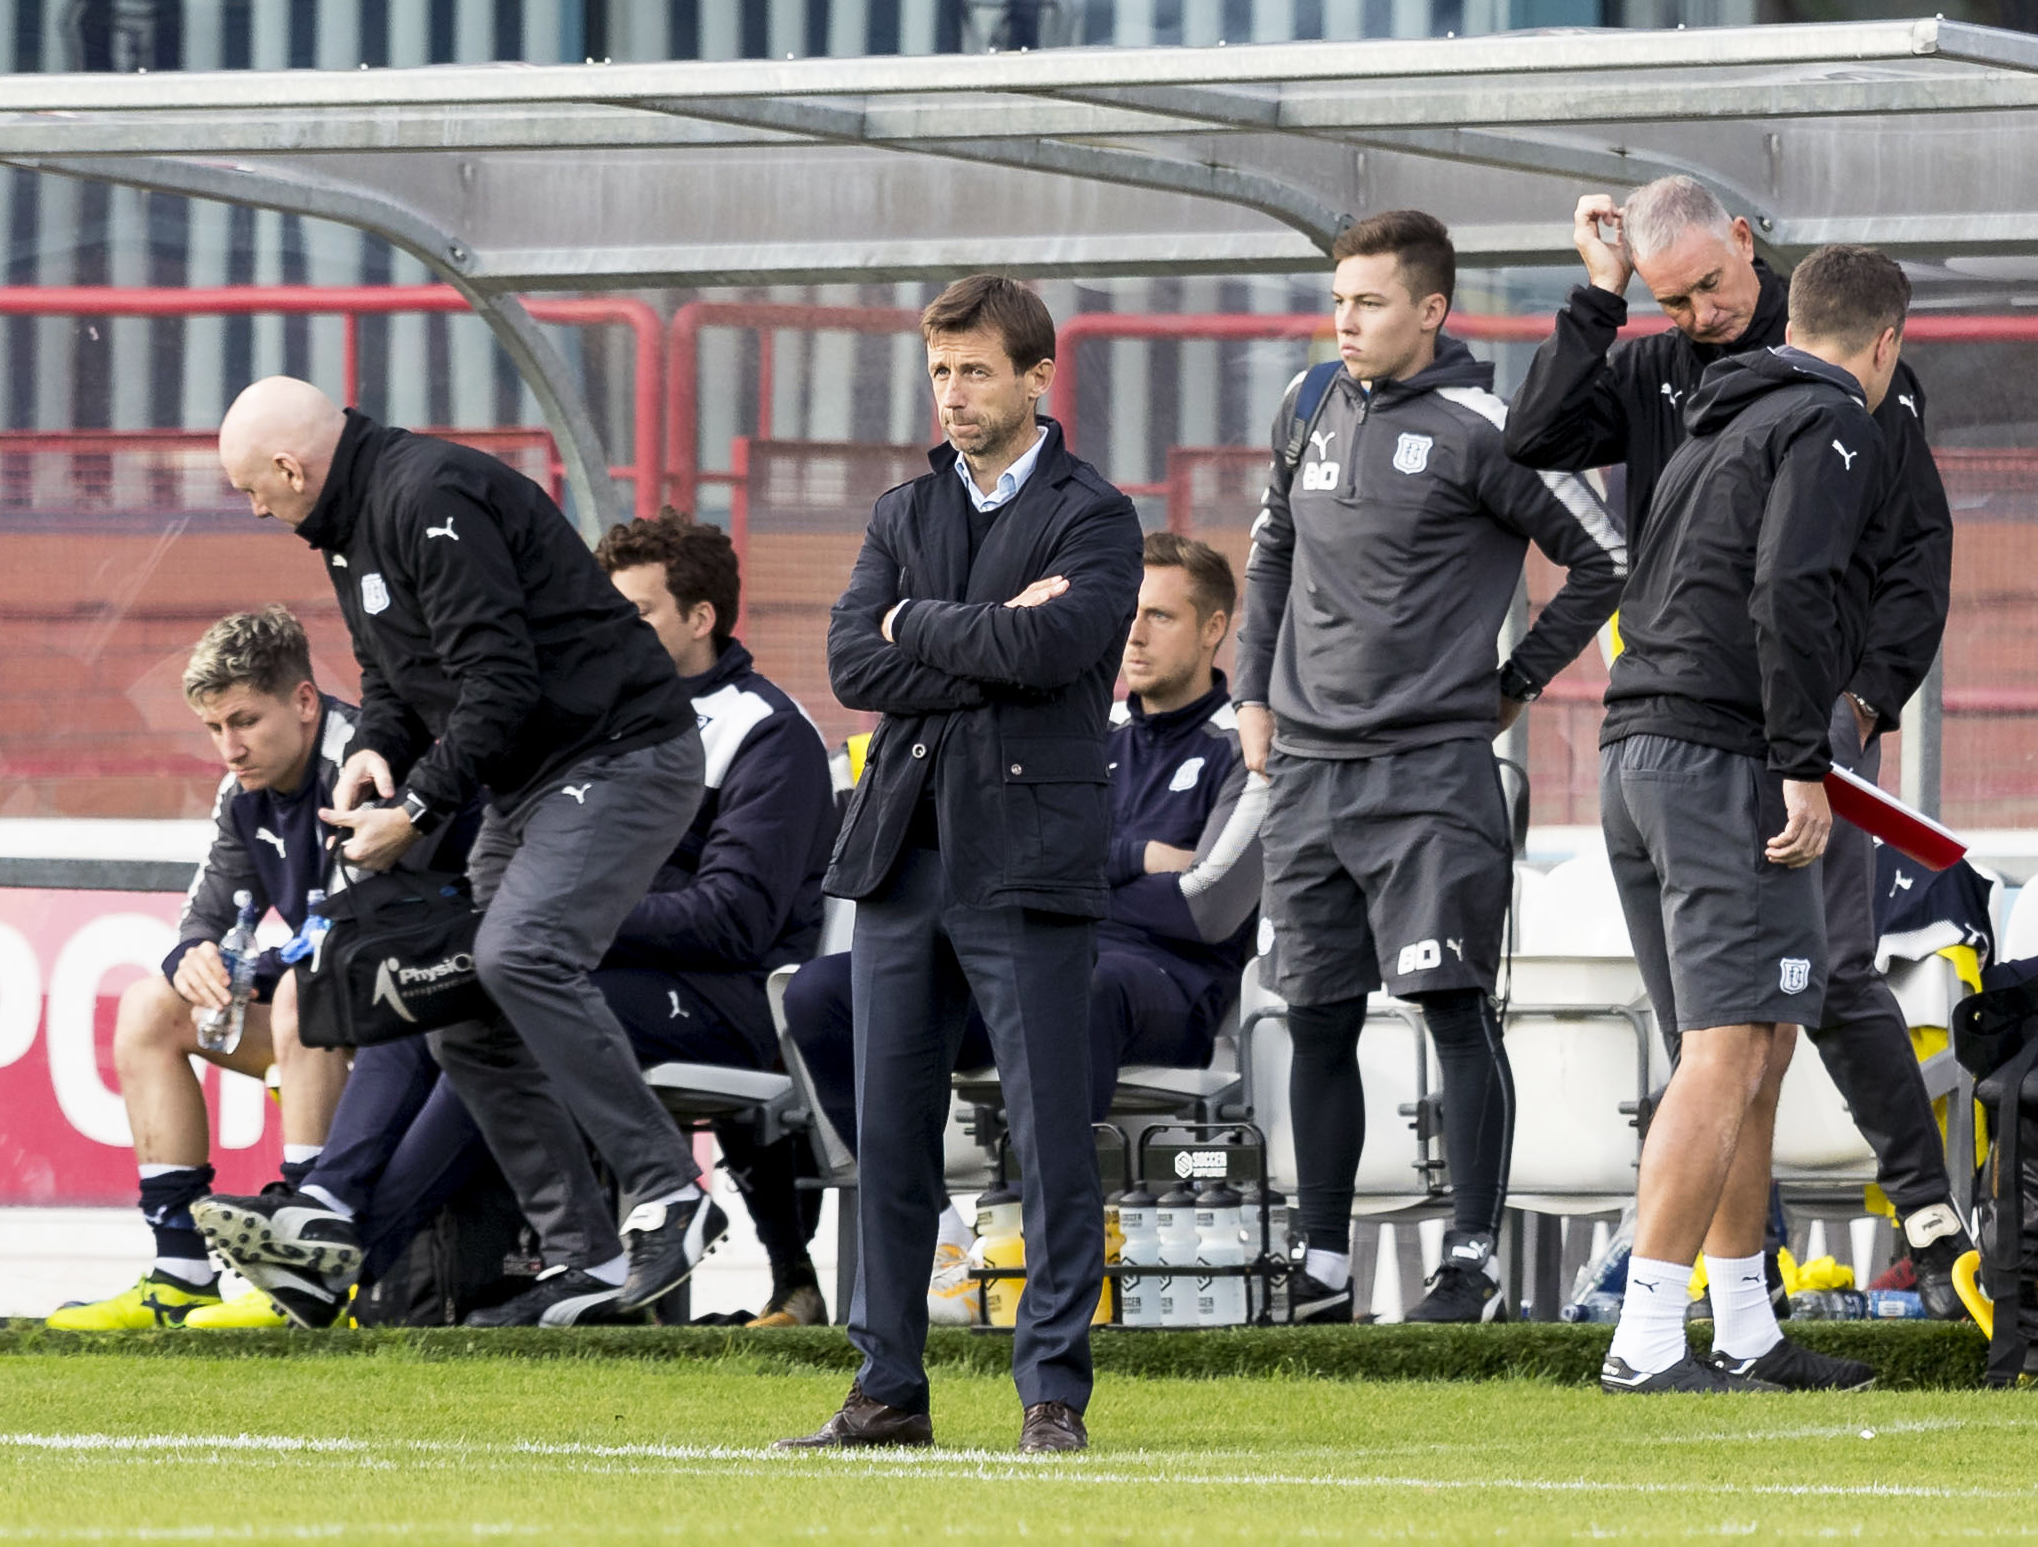 Dundee Manager Neil McCann looks on during the game against Hamilton